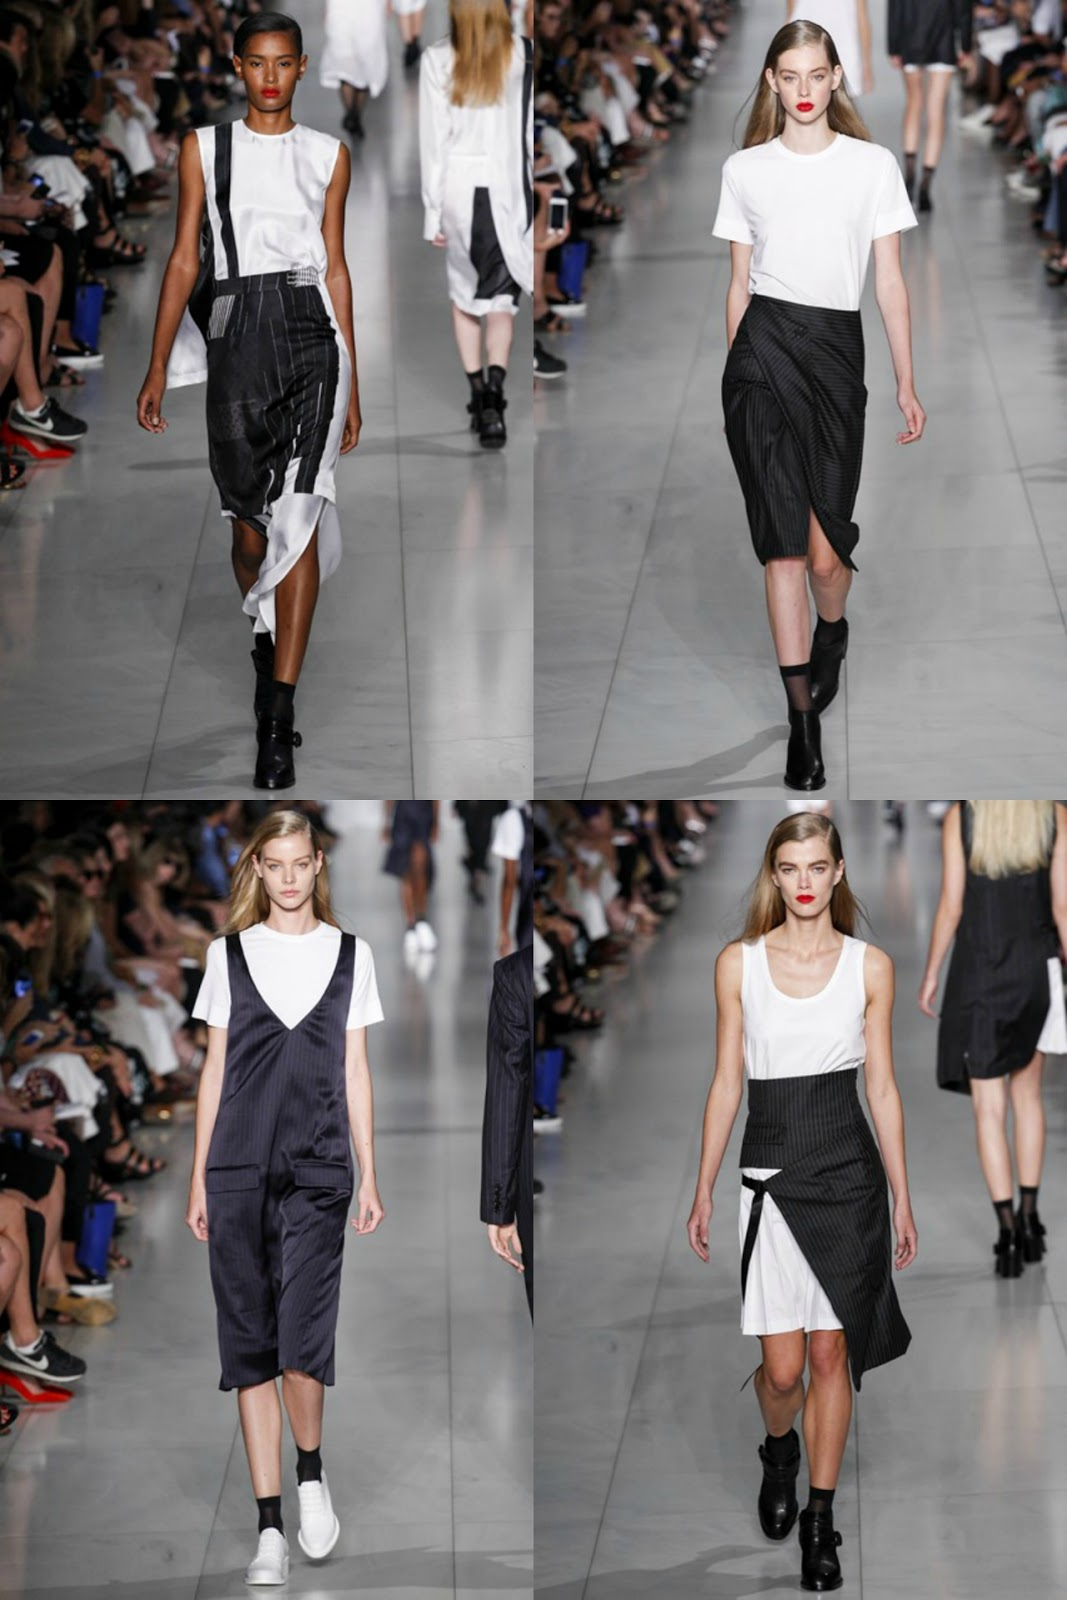 Eniwhere Fashion - B&W - Donna Karan SS2016